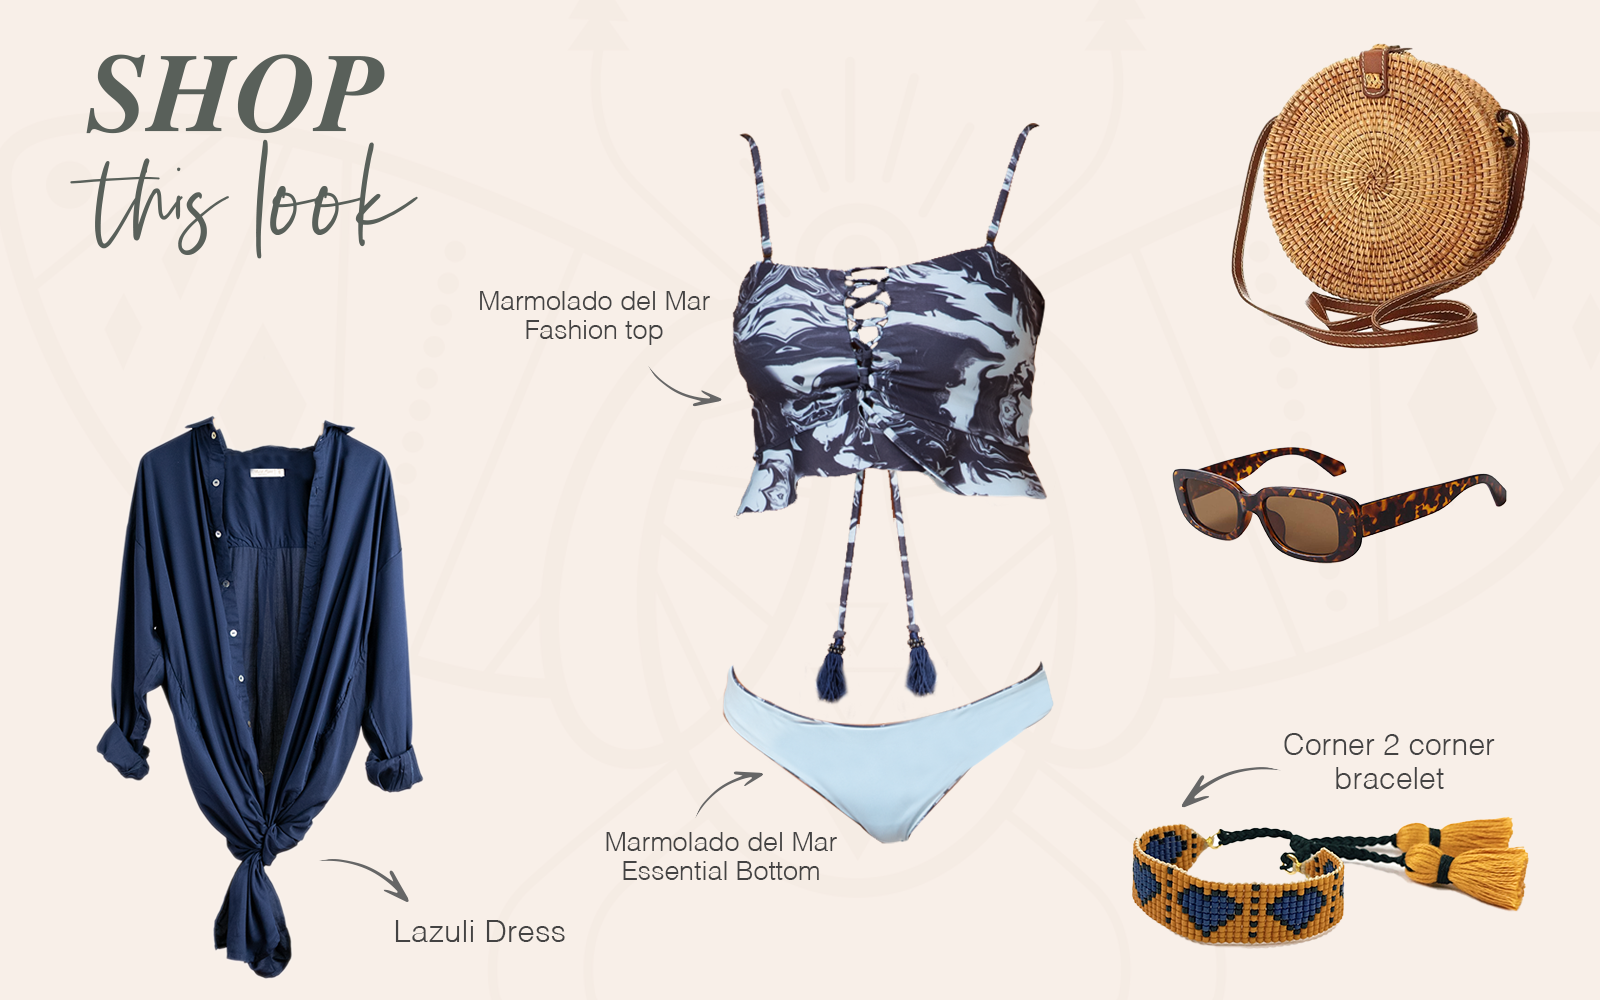 Shop This Look Marmolado del Mar